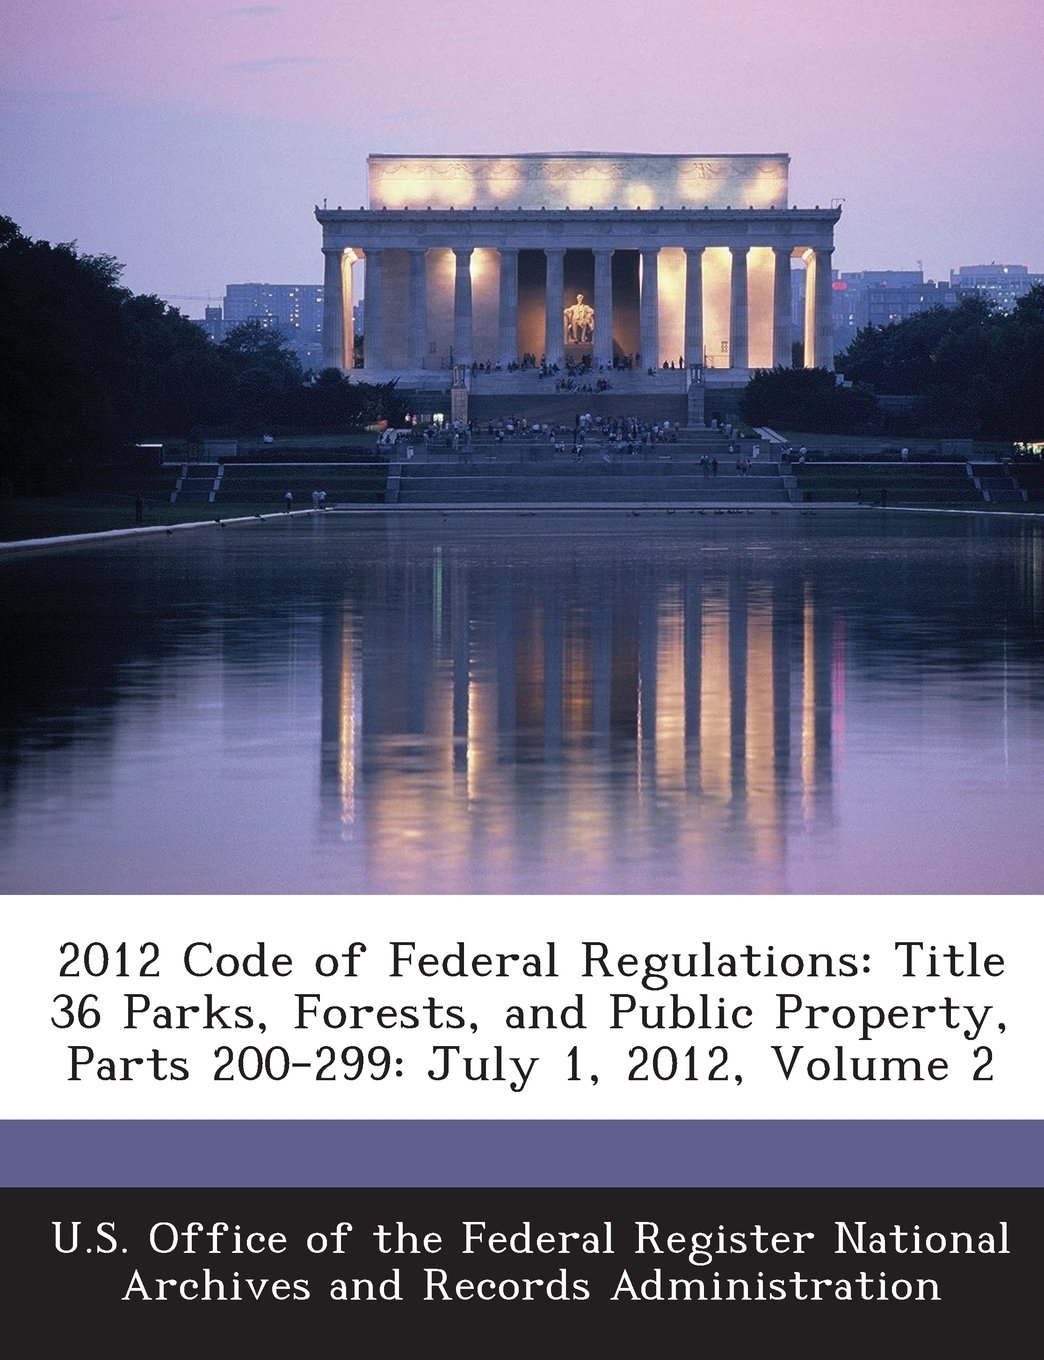 Download 2012 Code of Federal Regulations: Title 36 Parks, Forests, and Public Property, Parts 200-299: July 1, 2012, Volume 2 ebook